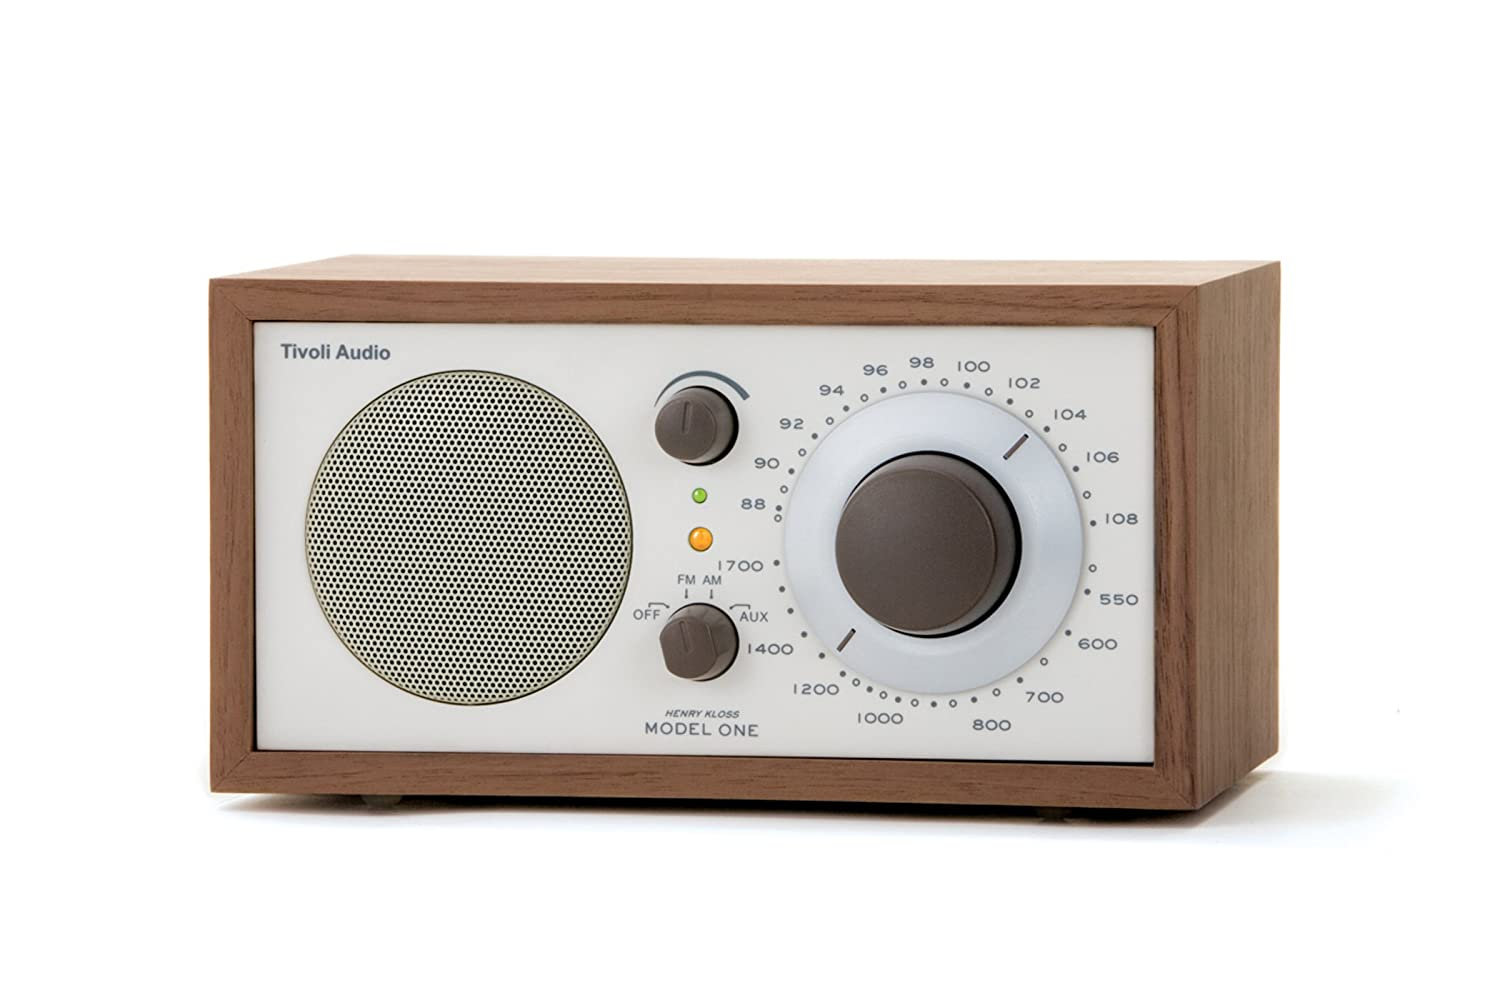 tivoli audio model one m1cla am fm table radio review consumer safari